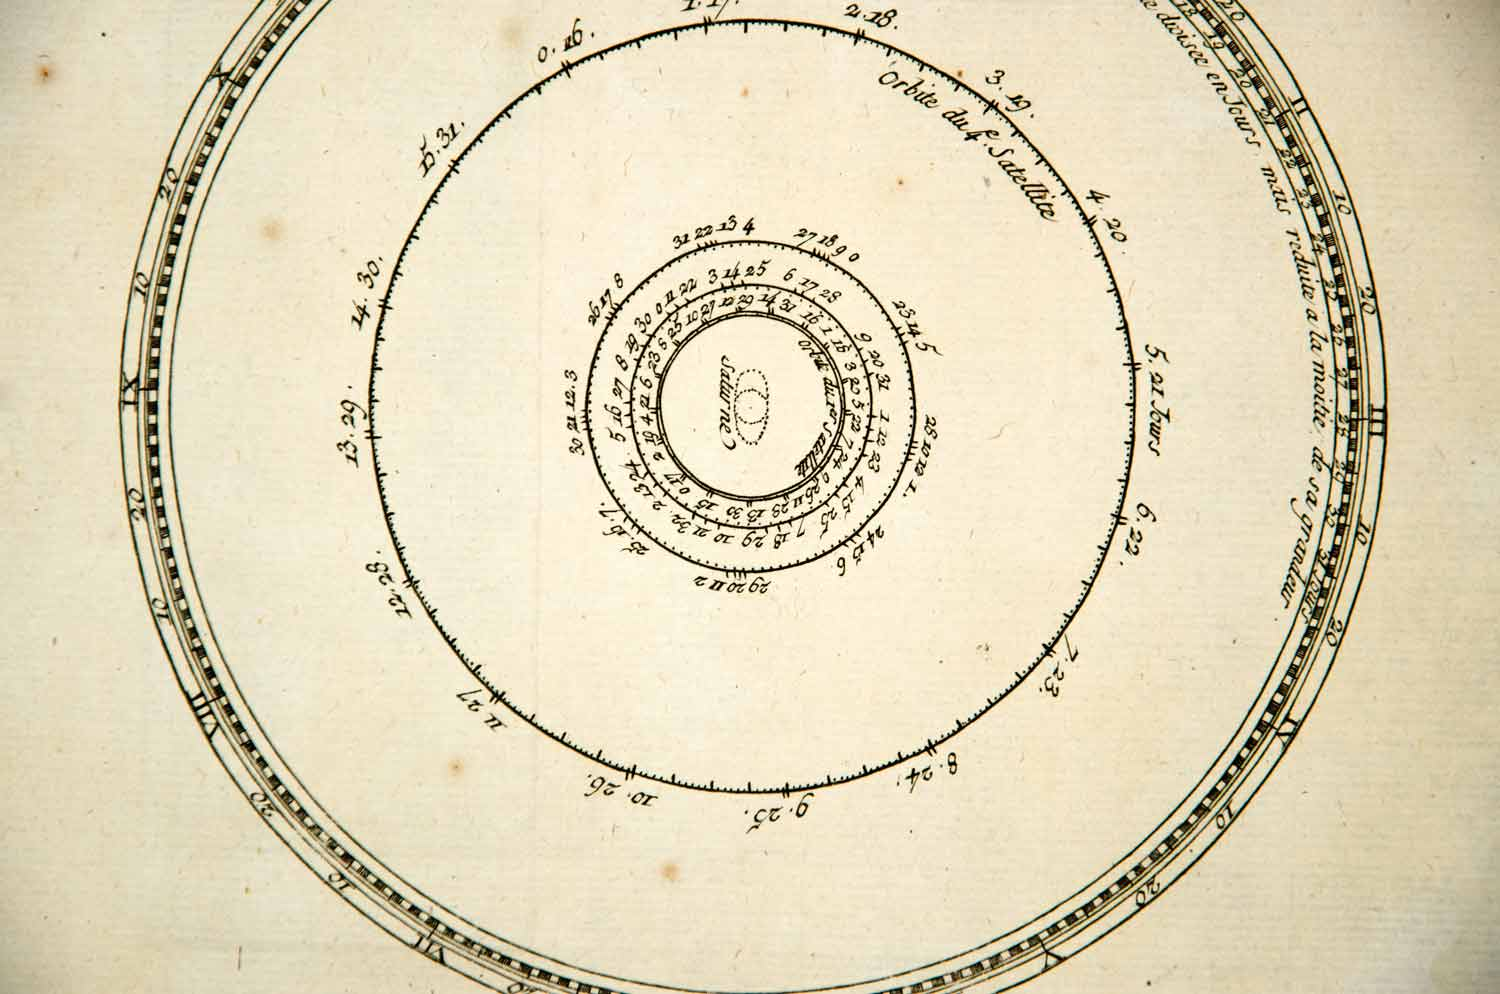 1779 Copper Engraving Astronomy Saturn Celestial Planet Antique Diderot DDR3